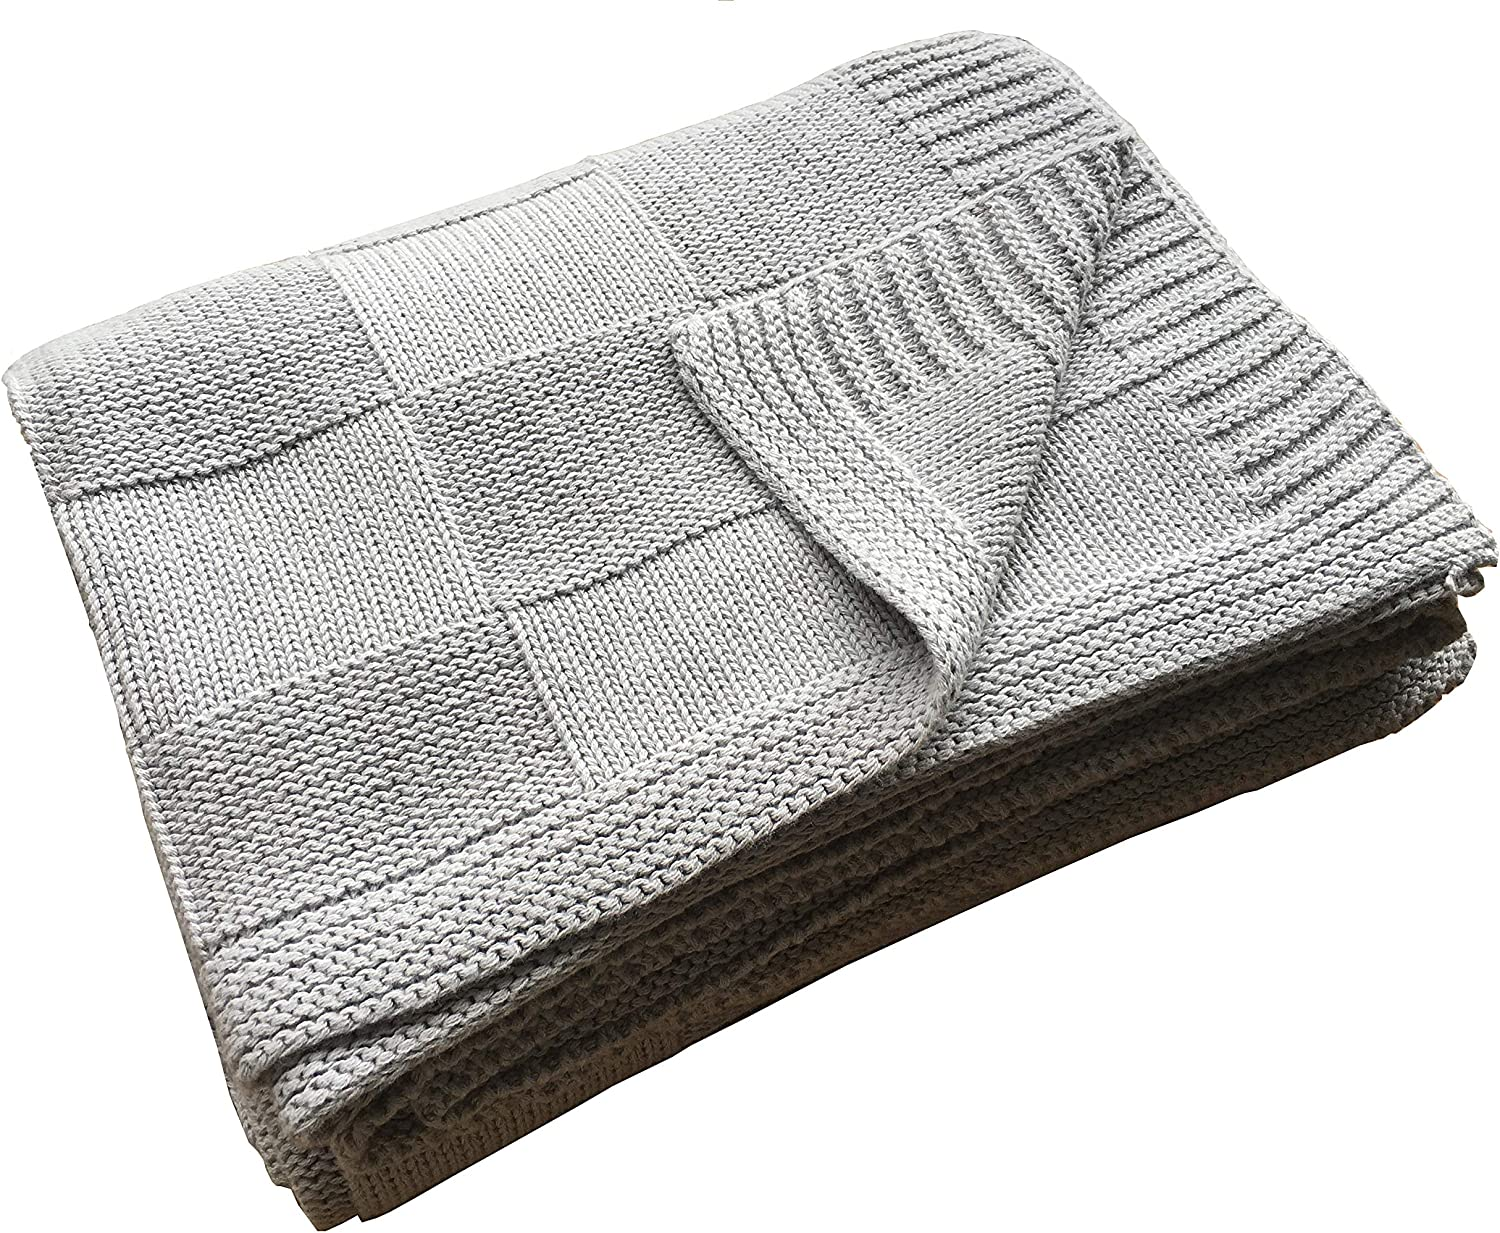 "Pre-Washed 100% Cotton Knit Throw Blanket for Couch, Chair, Adult, Kid, Plant Dyed Yarn, Super Soft, Cozy, Warm Bed Blankets, Everyday Use, All Season, Oeko-Tex Certified (Light Grey, 50""X60""): Kitchen & Dining"